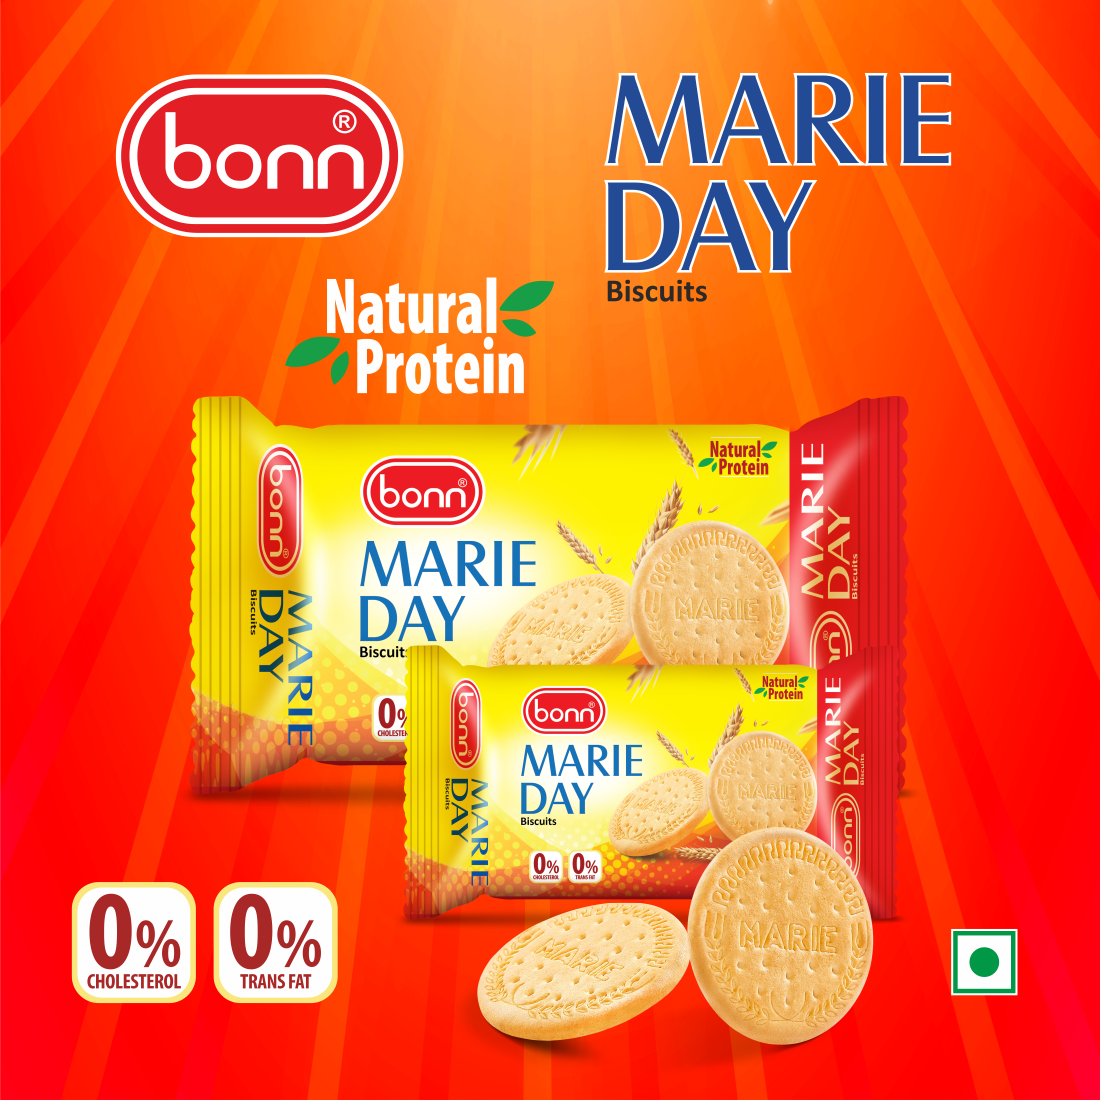 Bonn Marie Day Biscuits, Cholestro Free, TransFat Free, Natural Protein, 40 g Pack